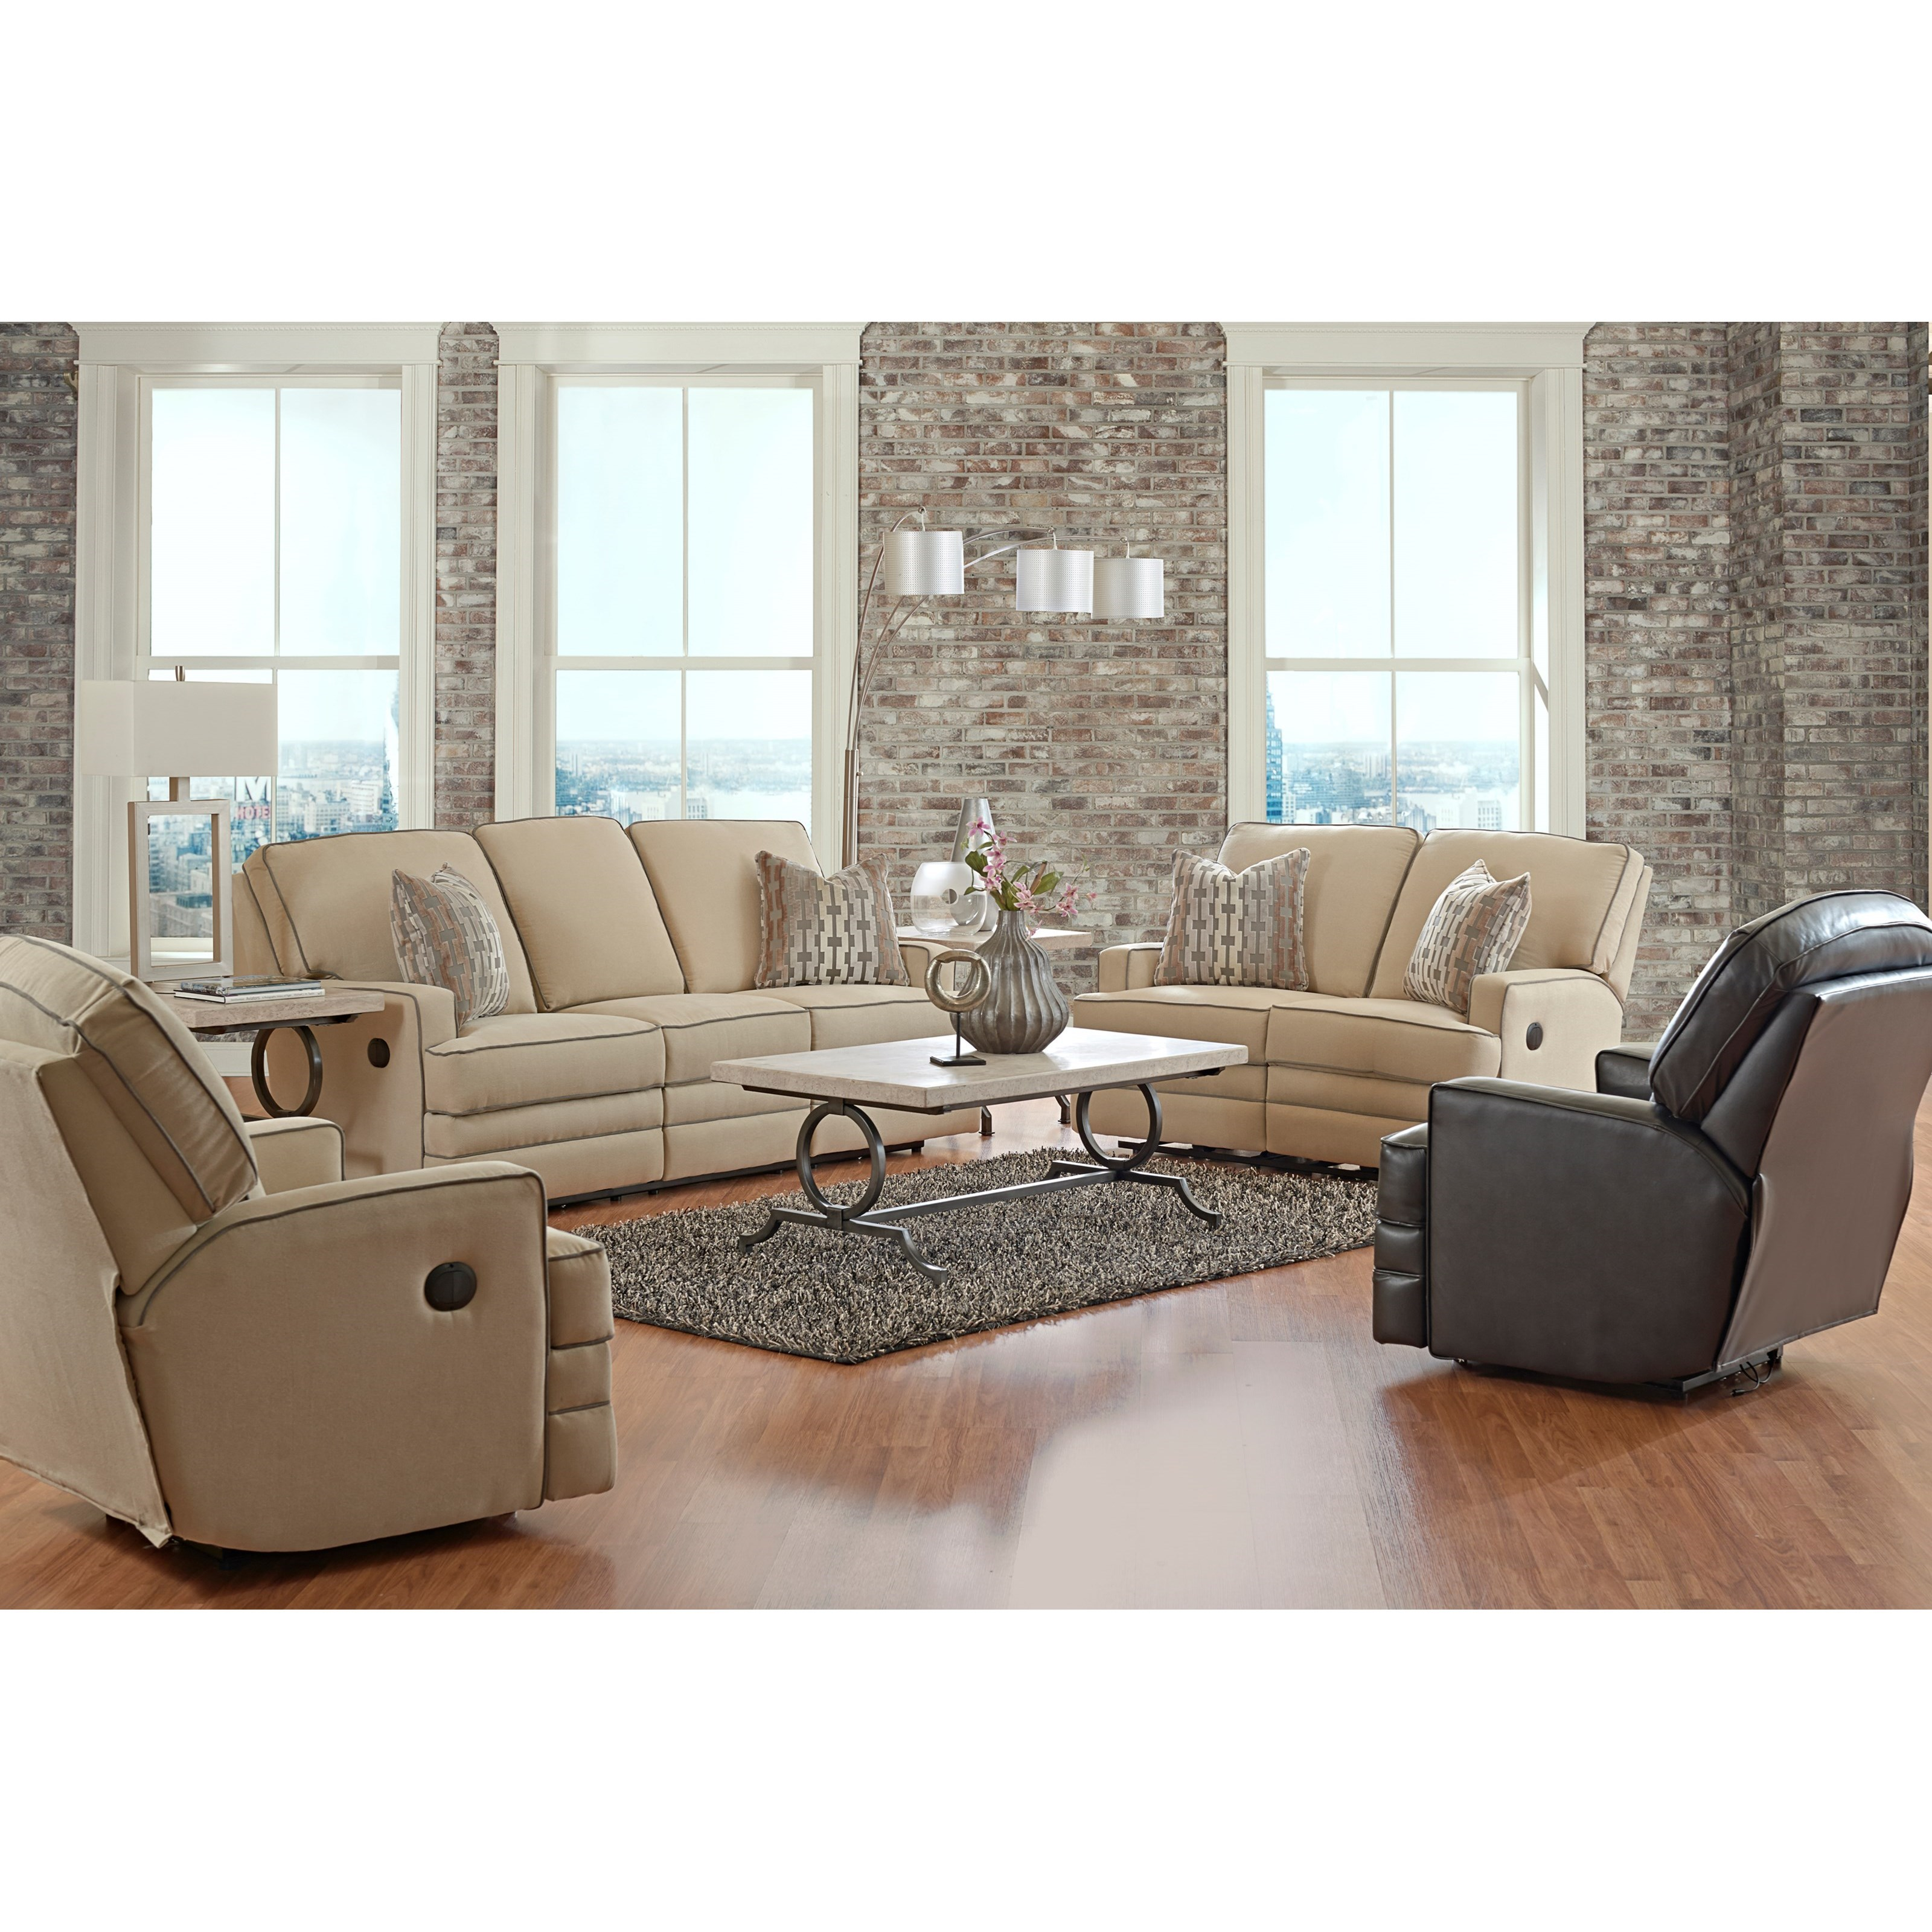 Casual Power Reclining Sofa with Throw Pillows by Klaussner